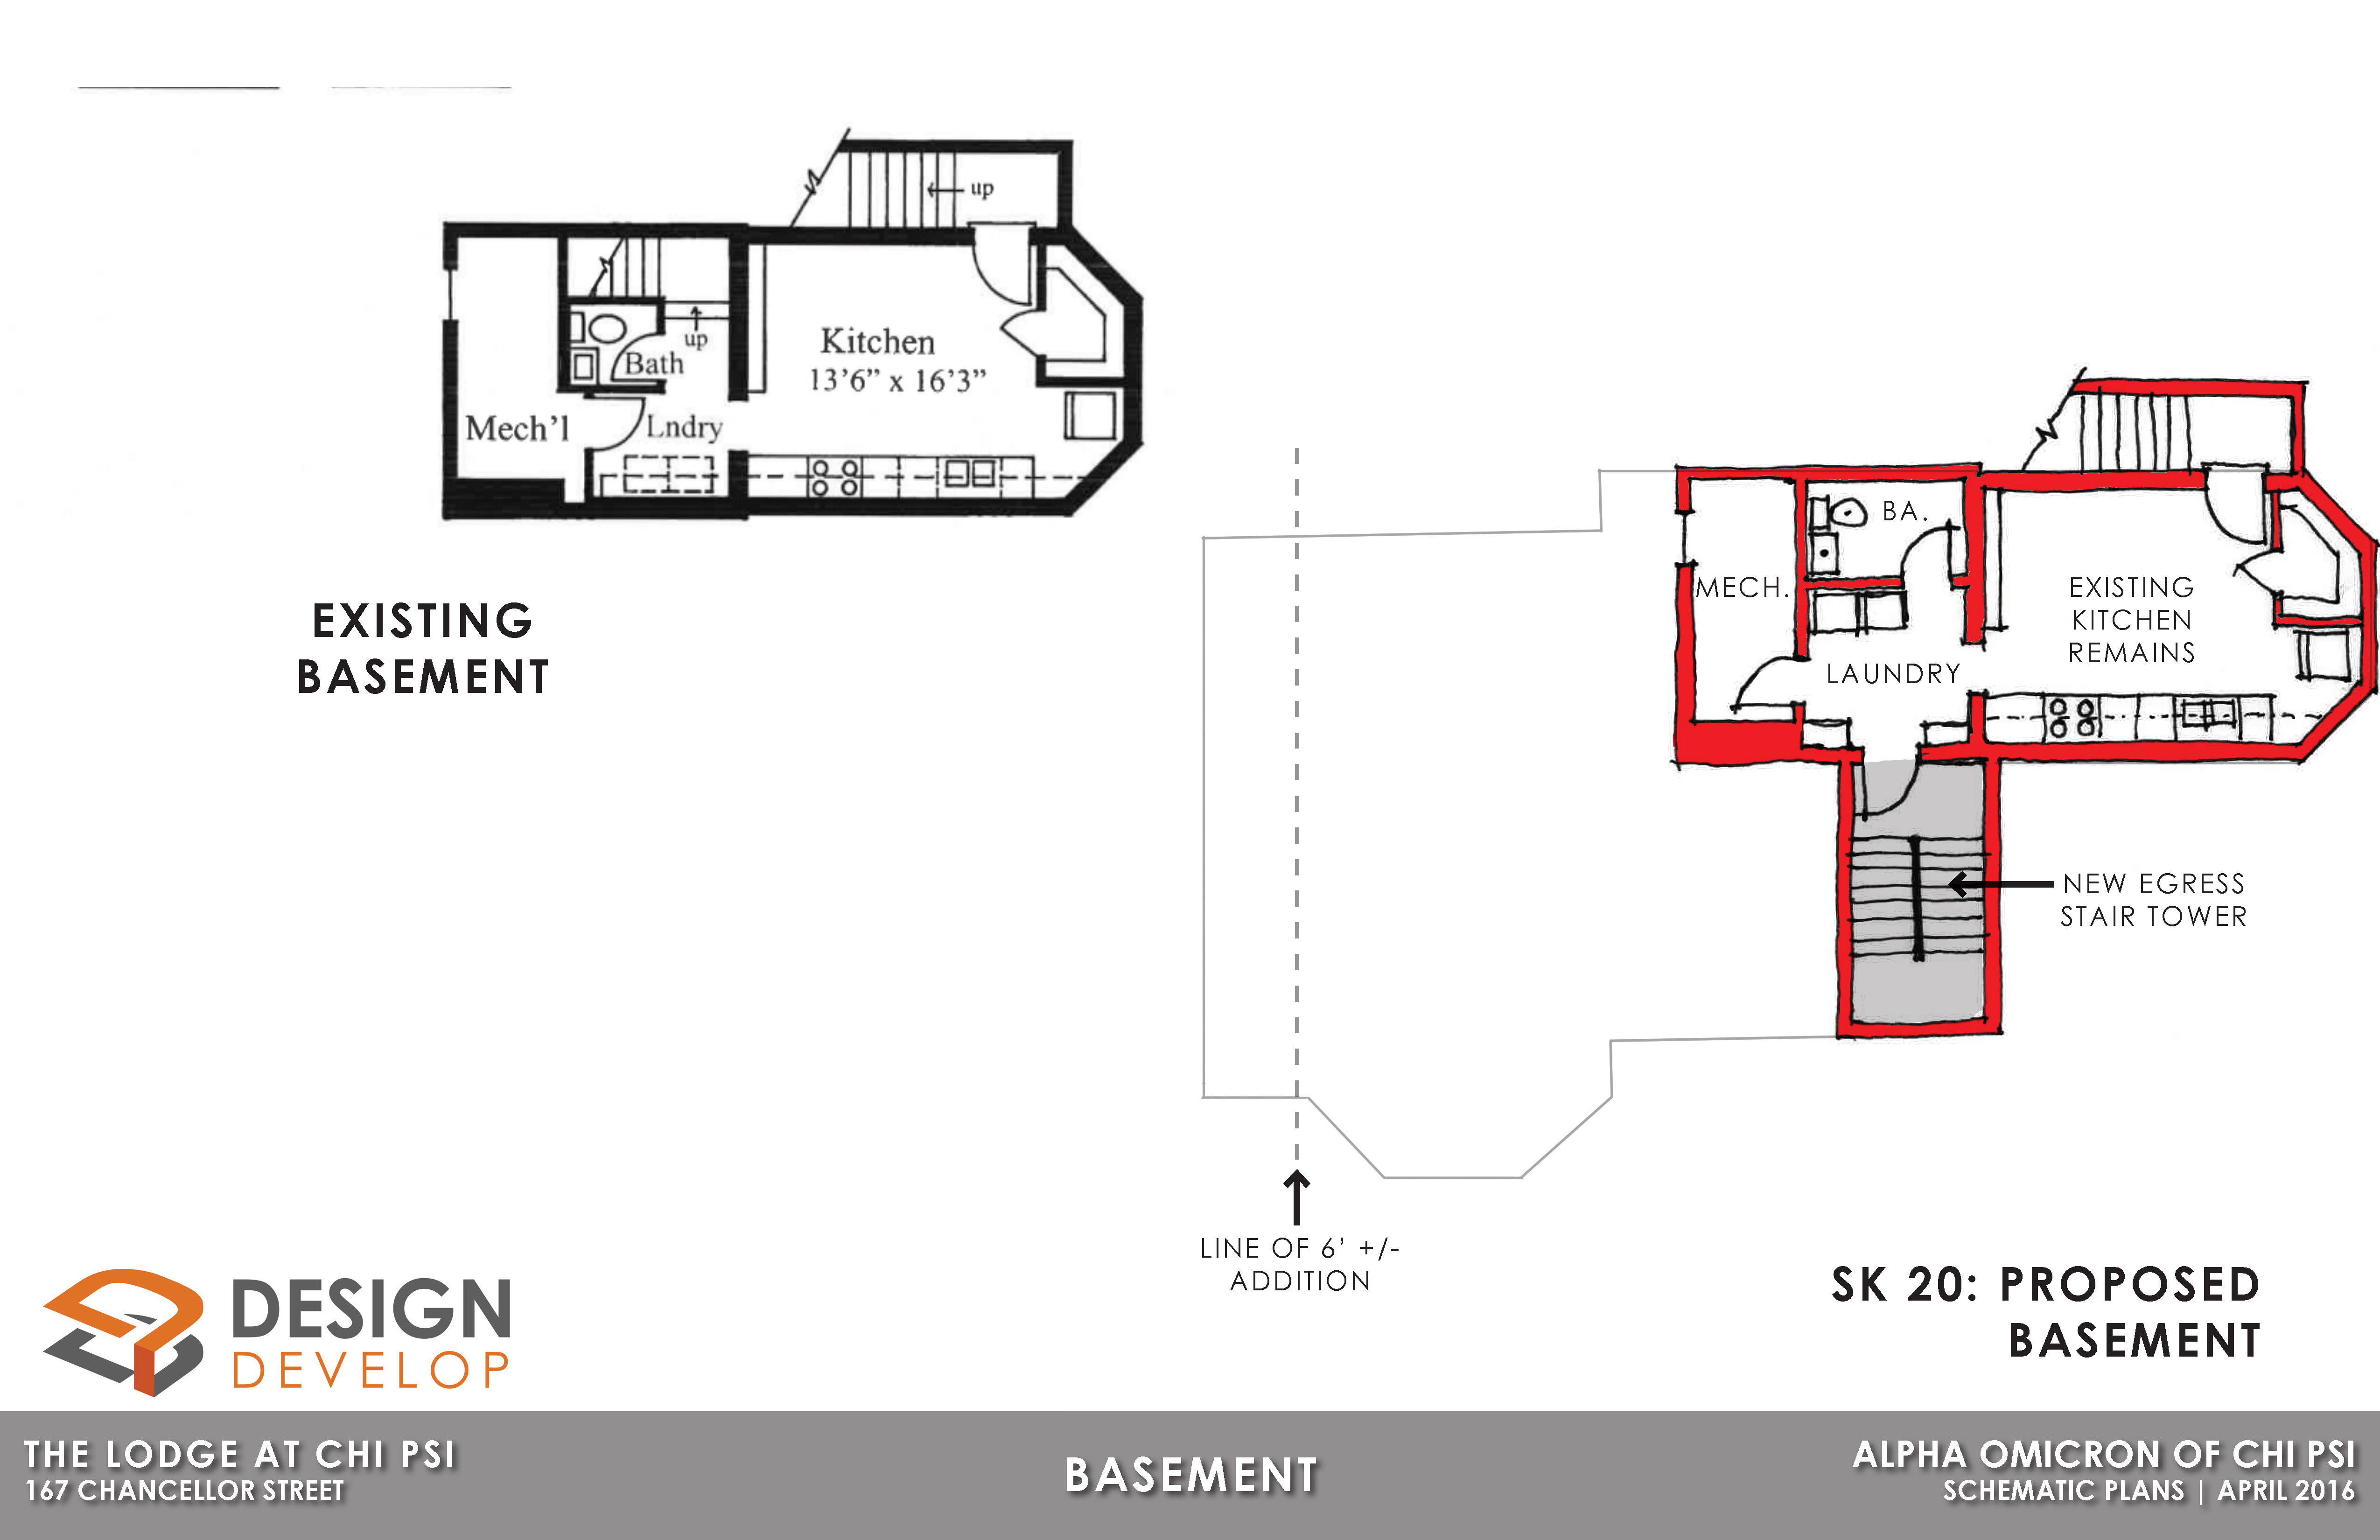 Basement Level Existing and Proposed